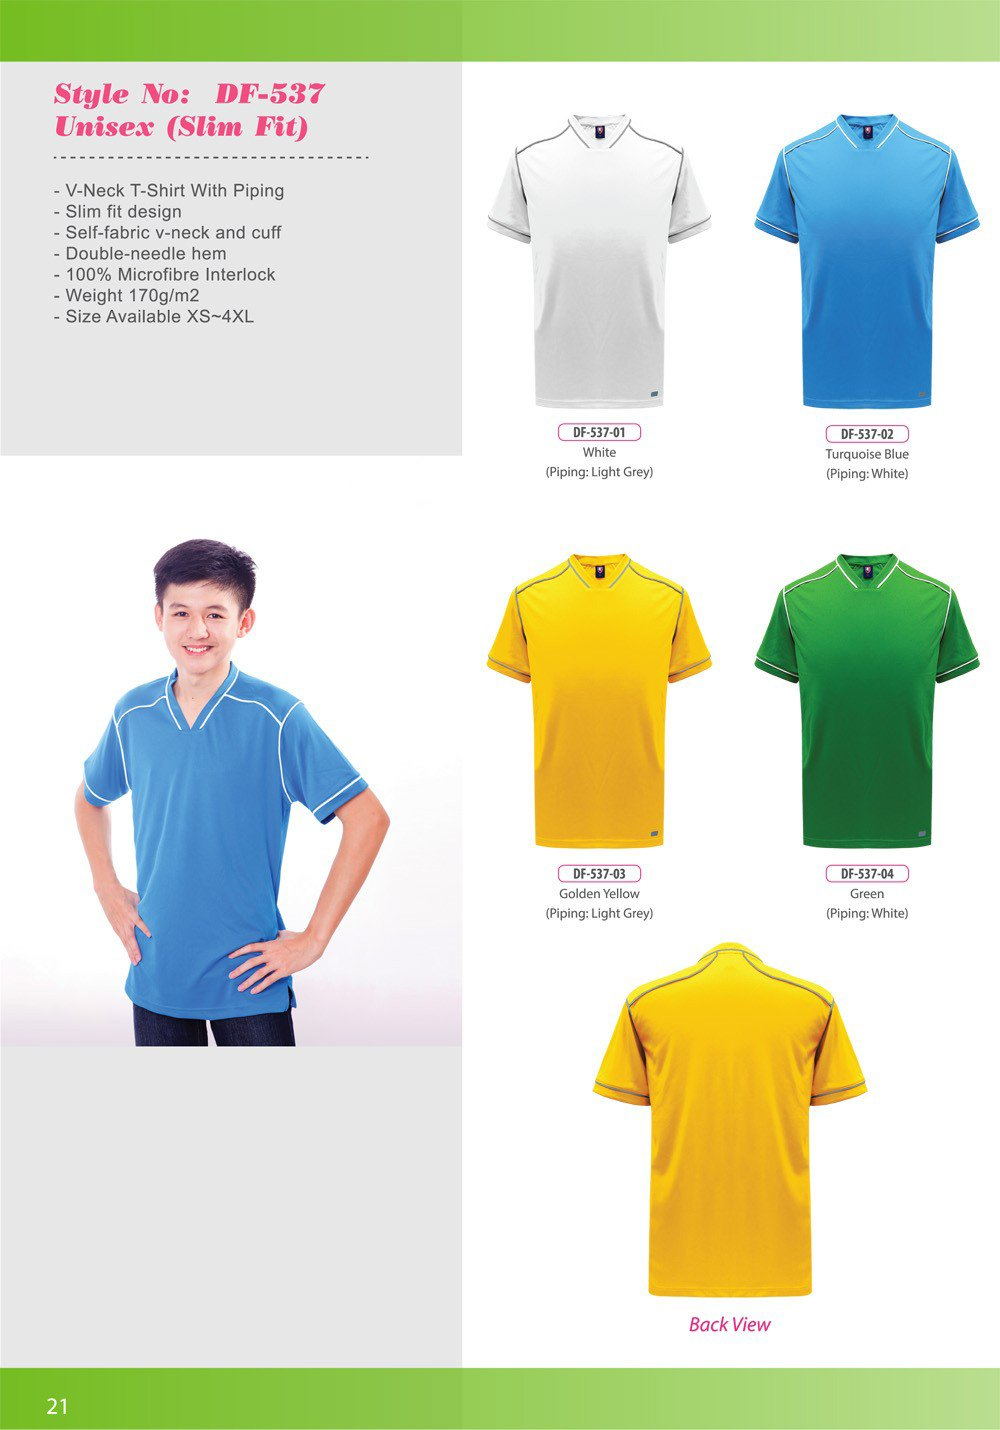 ID-DF 537 Unisex (Slim Fit) + Colors